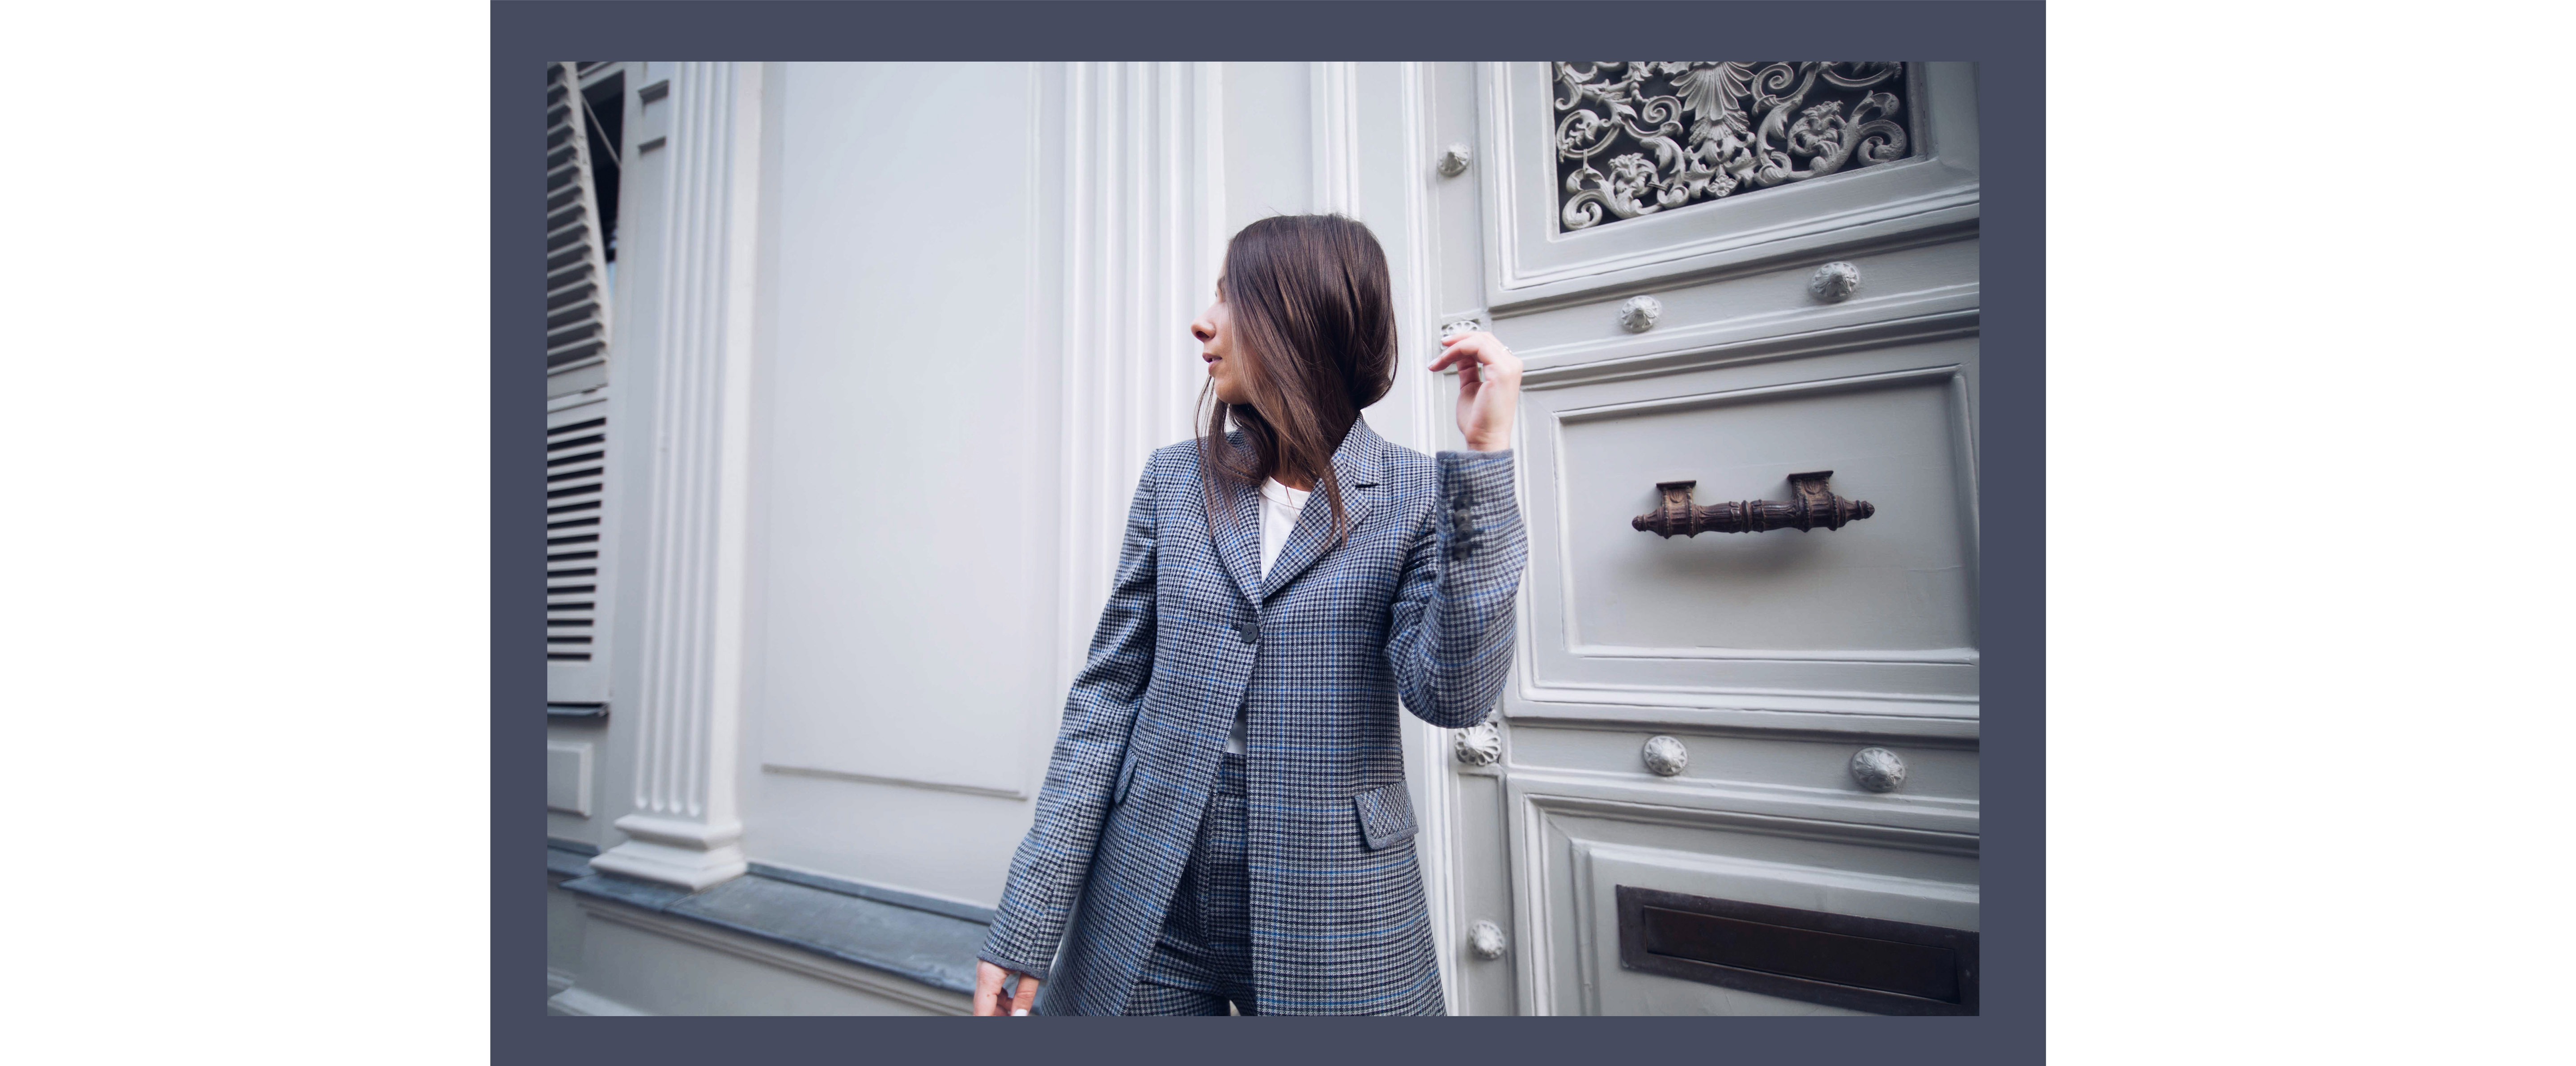 paul smith suit for woman